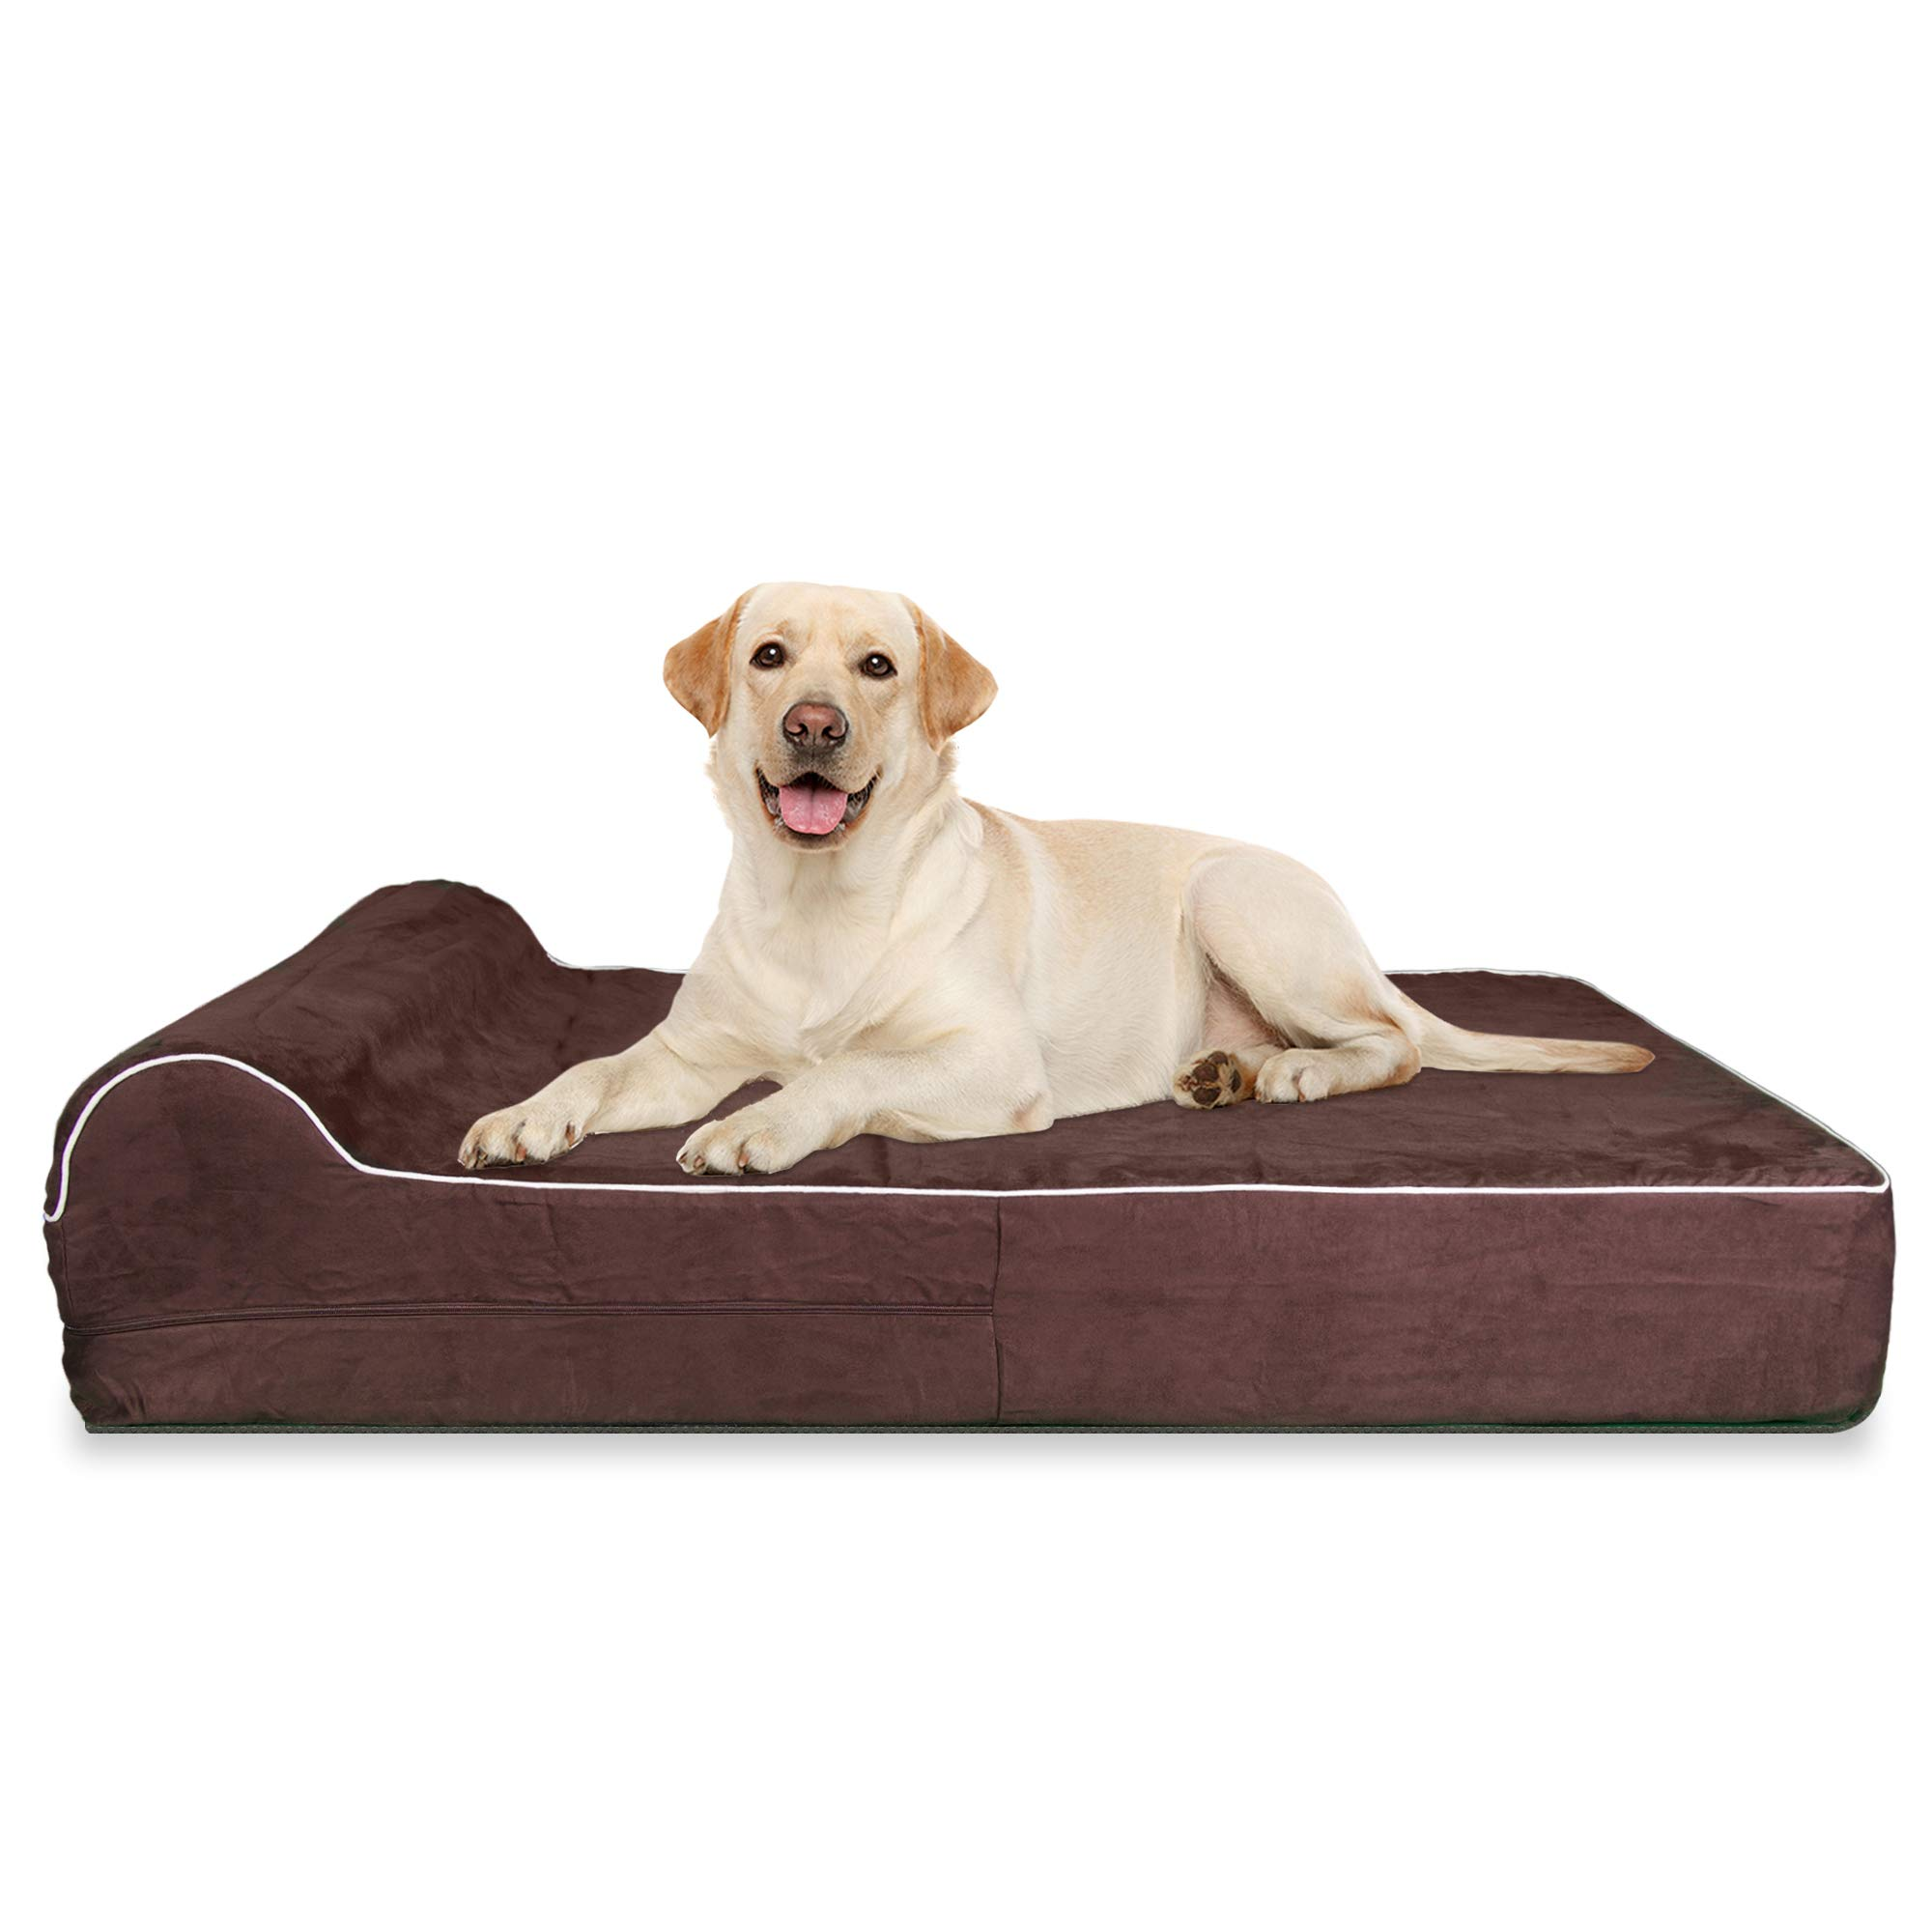 7'' Thick High Grade Orthopedic Memory Foam Dog Bed with Pillow & Easy To Wash Removable Cover with Anti-Slip Bottom. Free Waterproof Liner Included - Jumbo X-Large for Large Dogs - Brown by KOPEKS